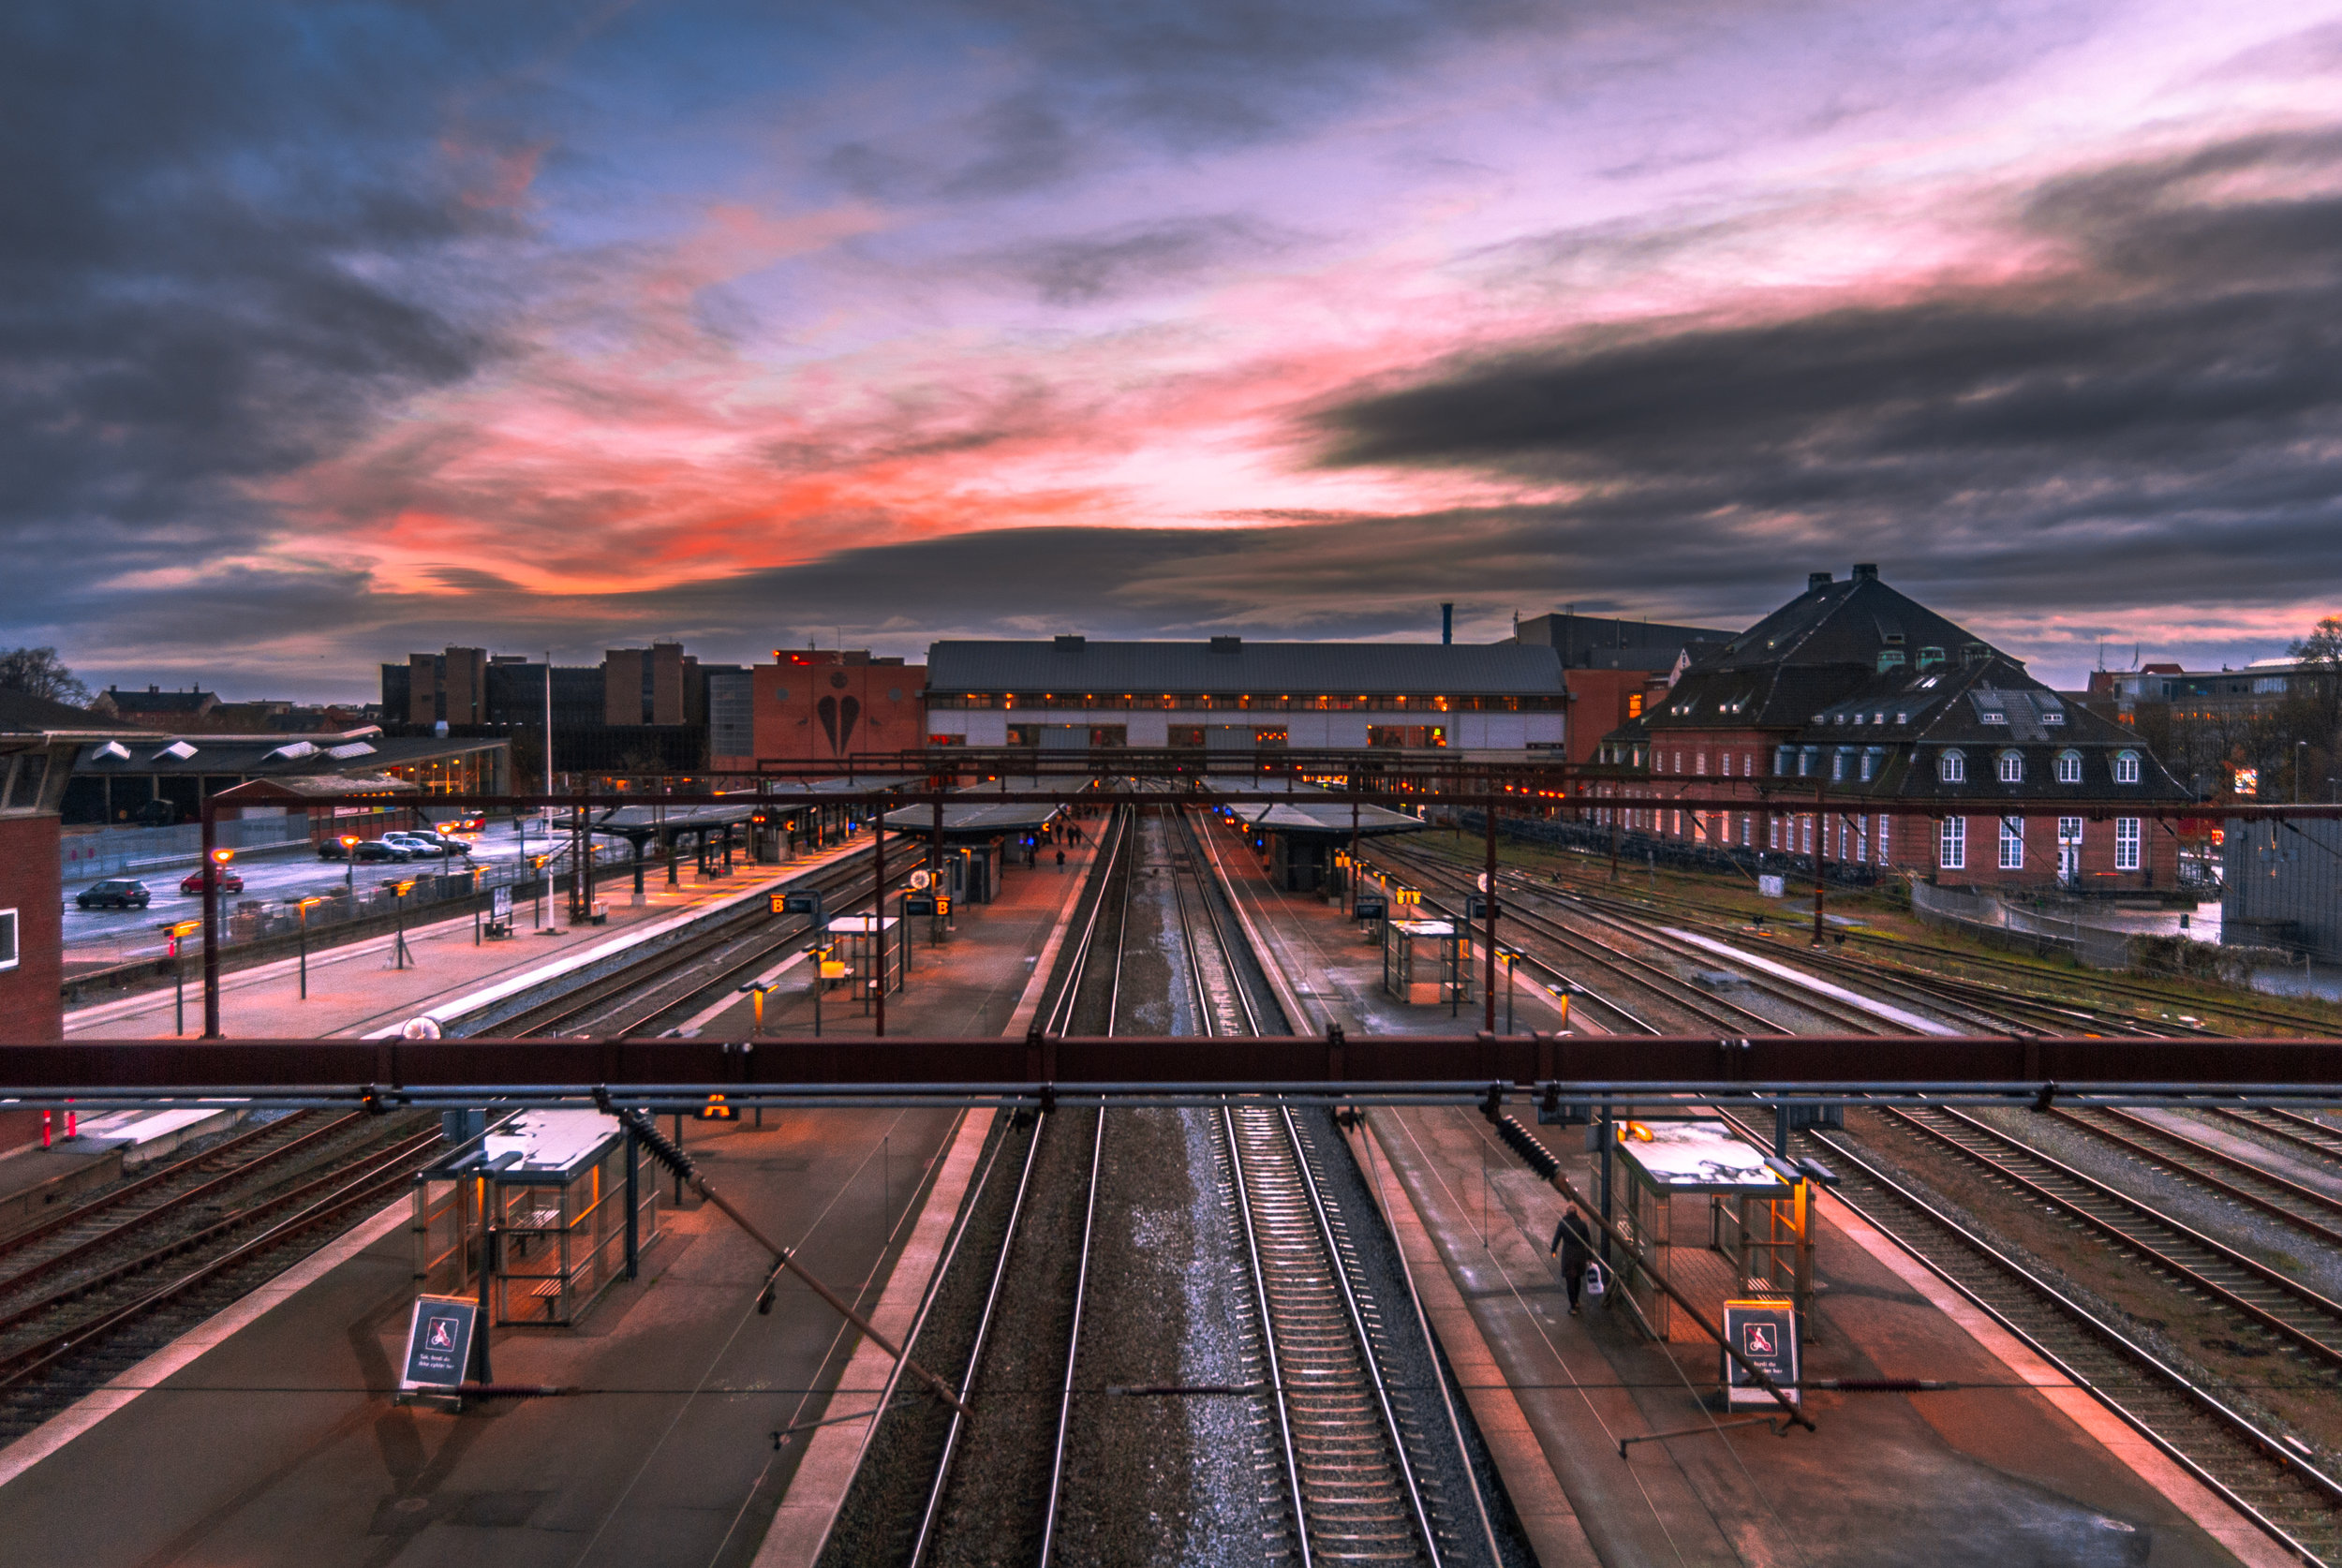 Sunset over the railway station. Nikon D200